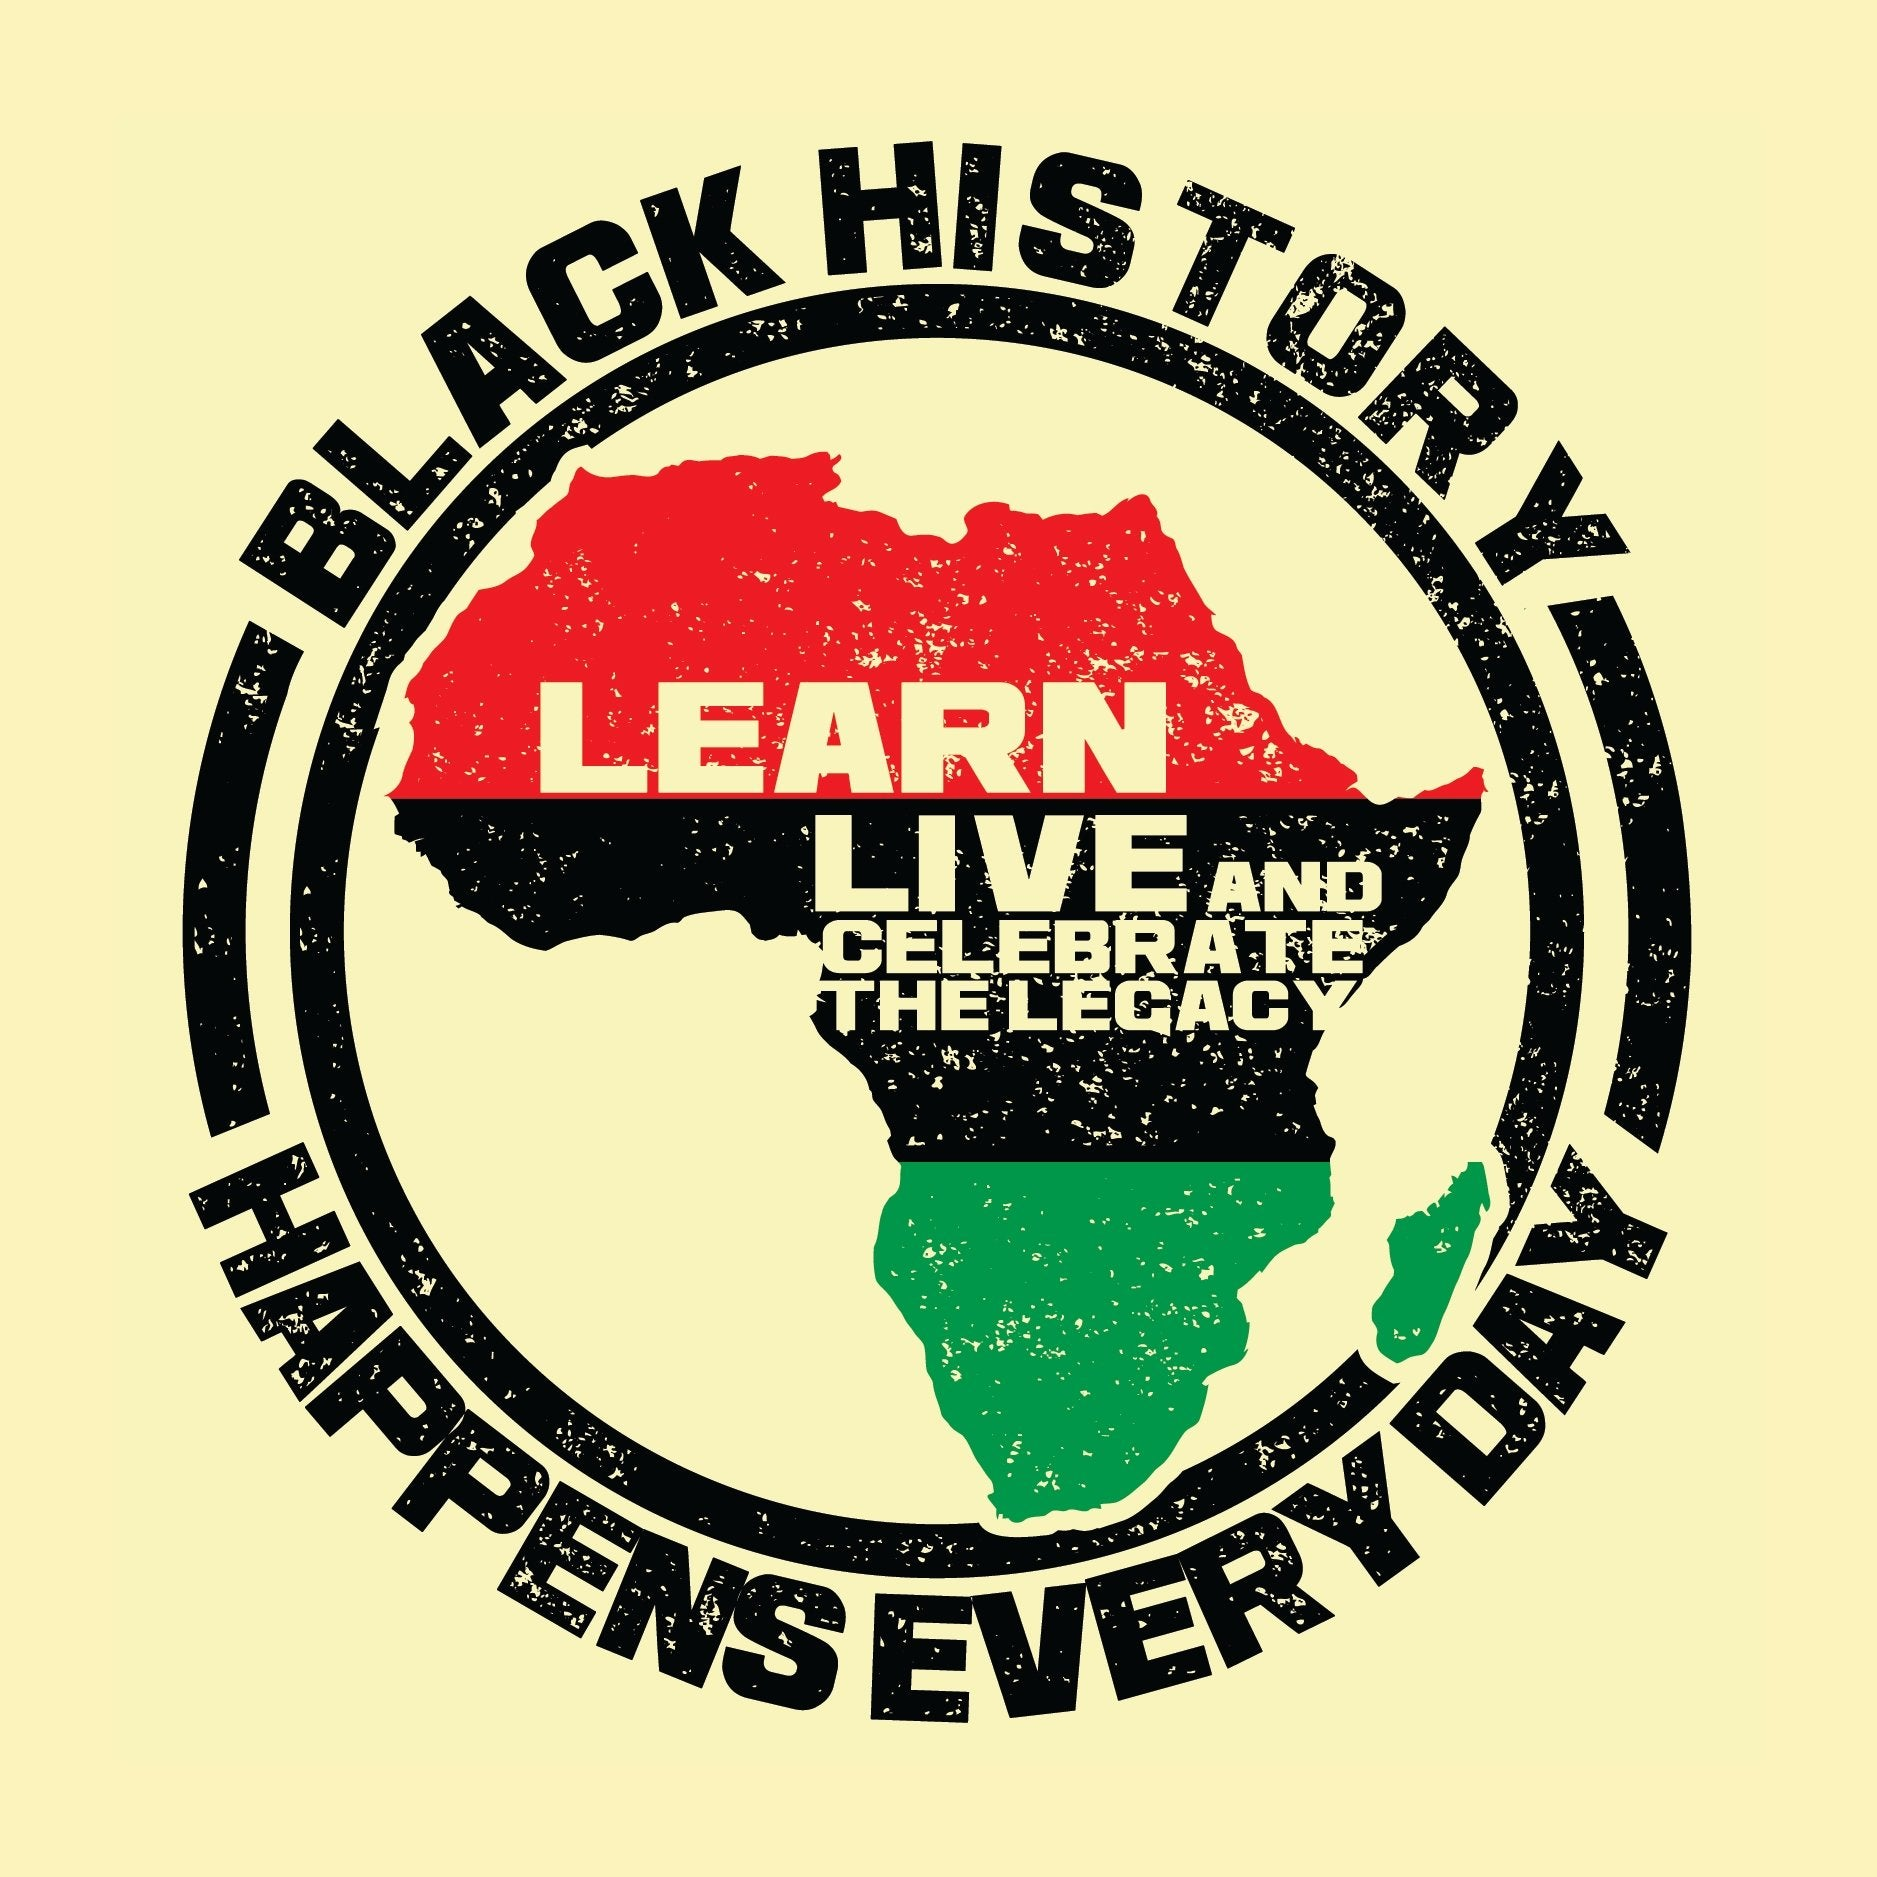 Black History Happens Everyday Poster by Sankofa Designs